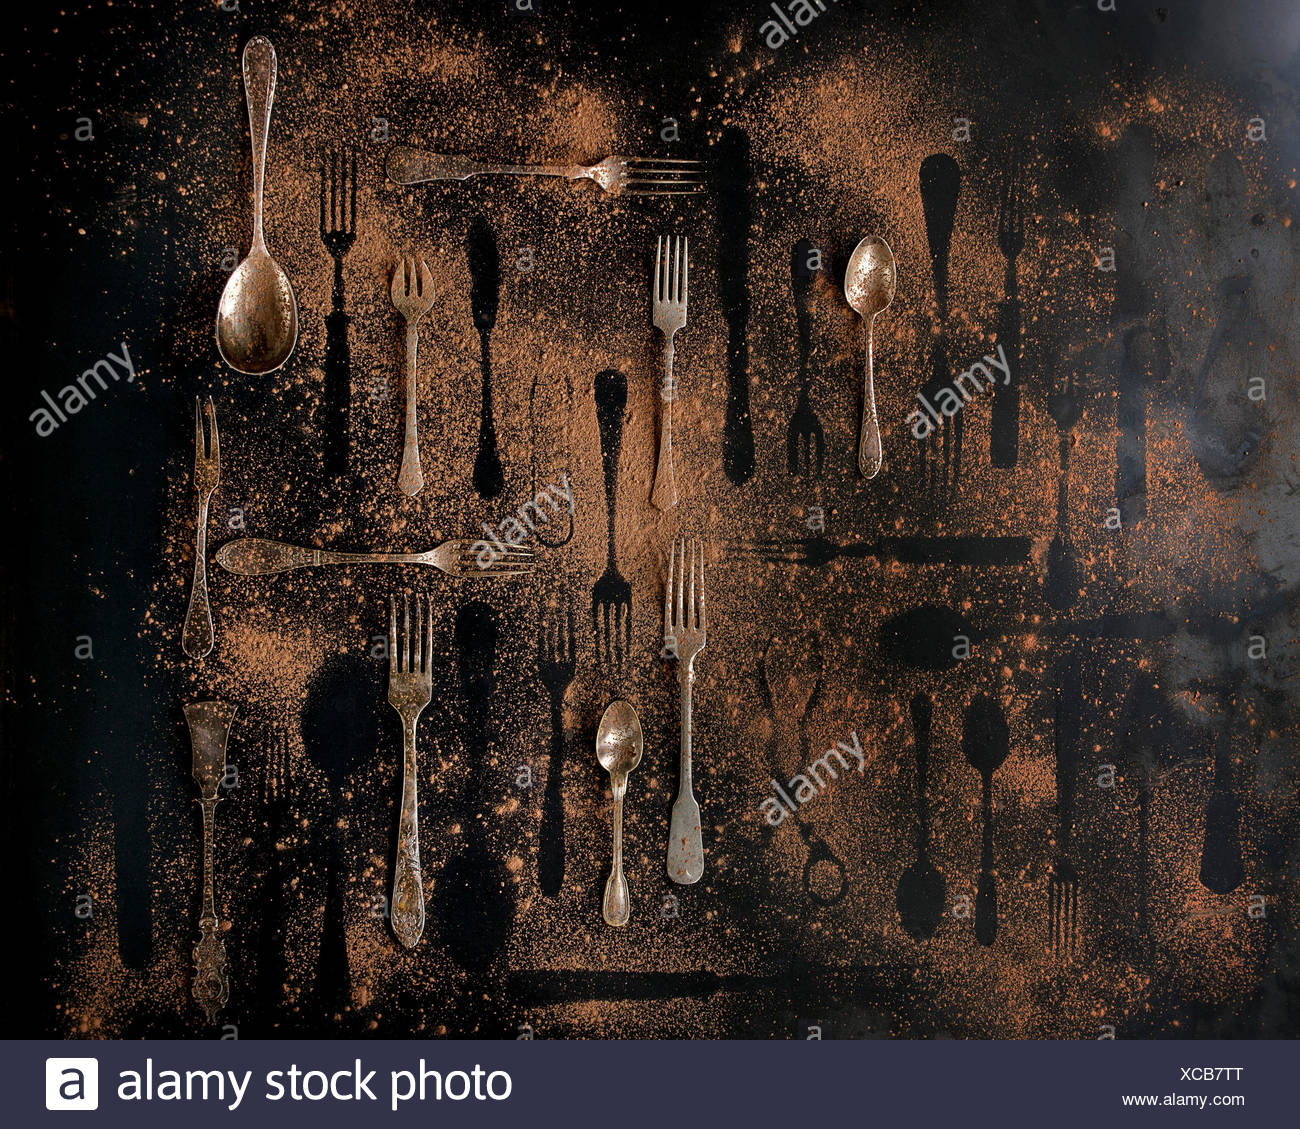 Big set of vintage and disappeared cutlery under brown dust over black metal background. Top view - Stock Image